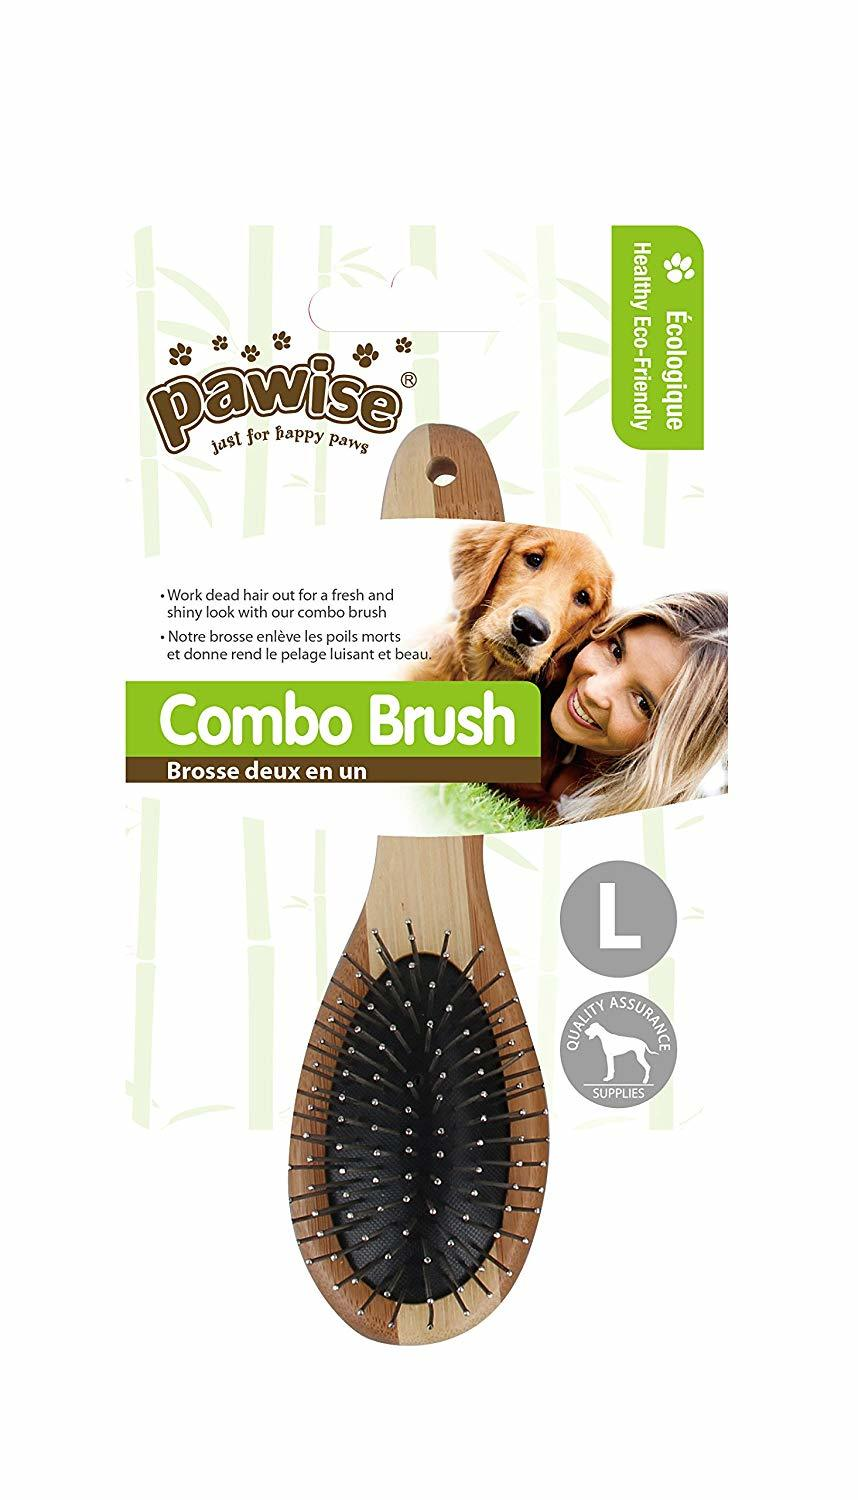 Pawise: Grooming Combo Brush image